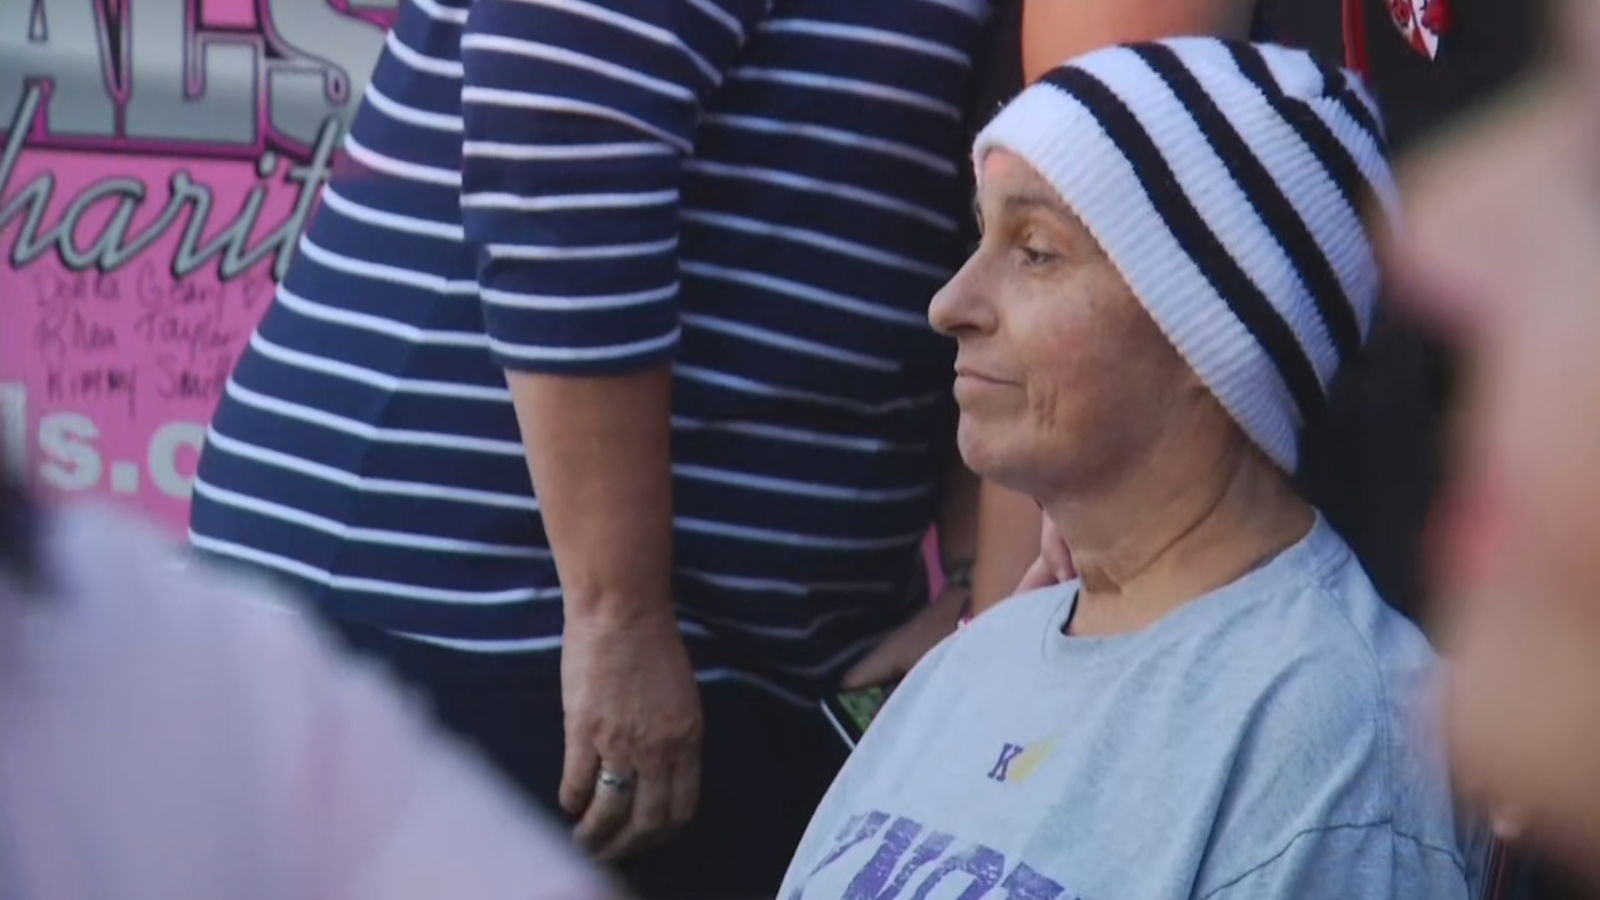 Firefighters surprised a Coventry woman who's battling cancer Thursday, Aug. 29, 2019. (WJAR)